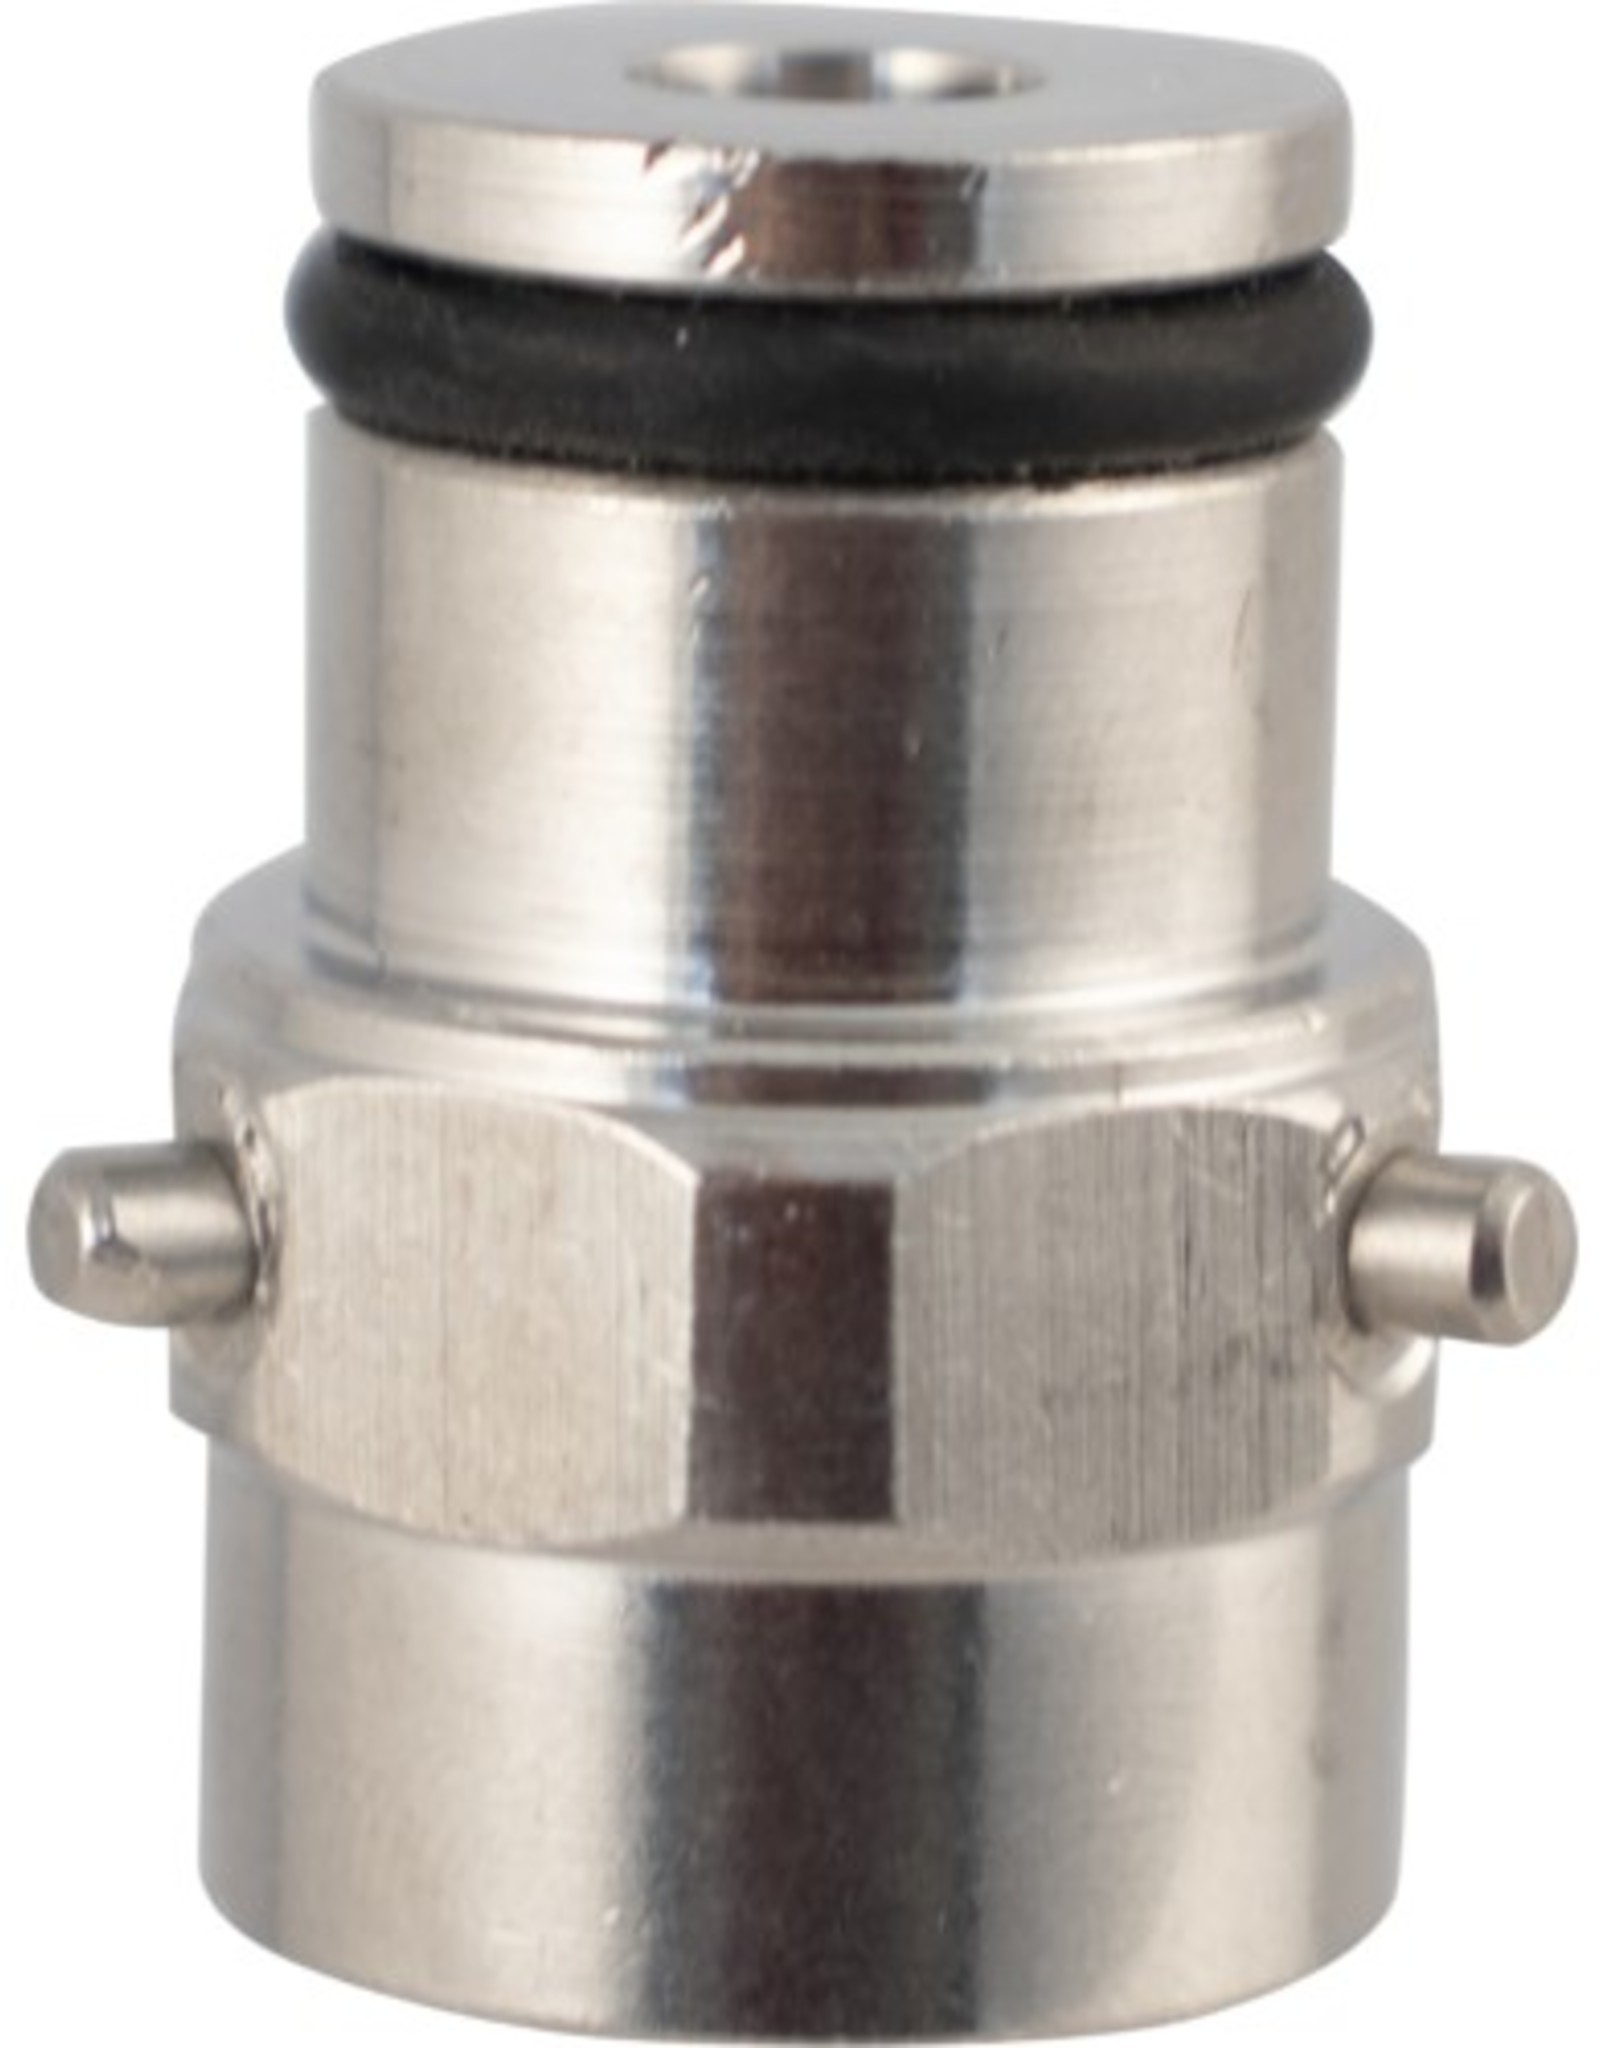 Body Connect- Pin Lock Gas-In (2 pins)